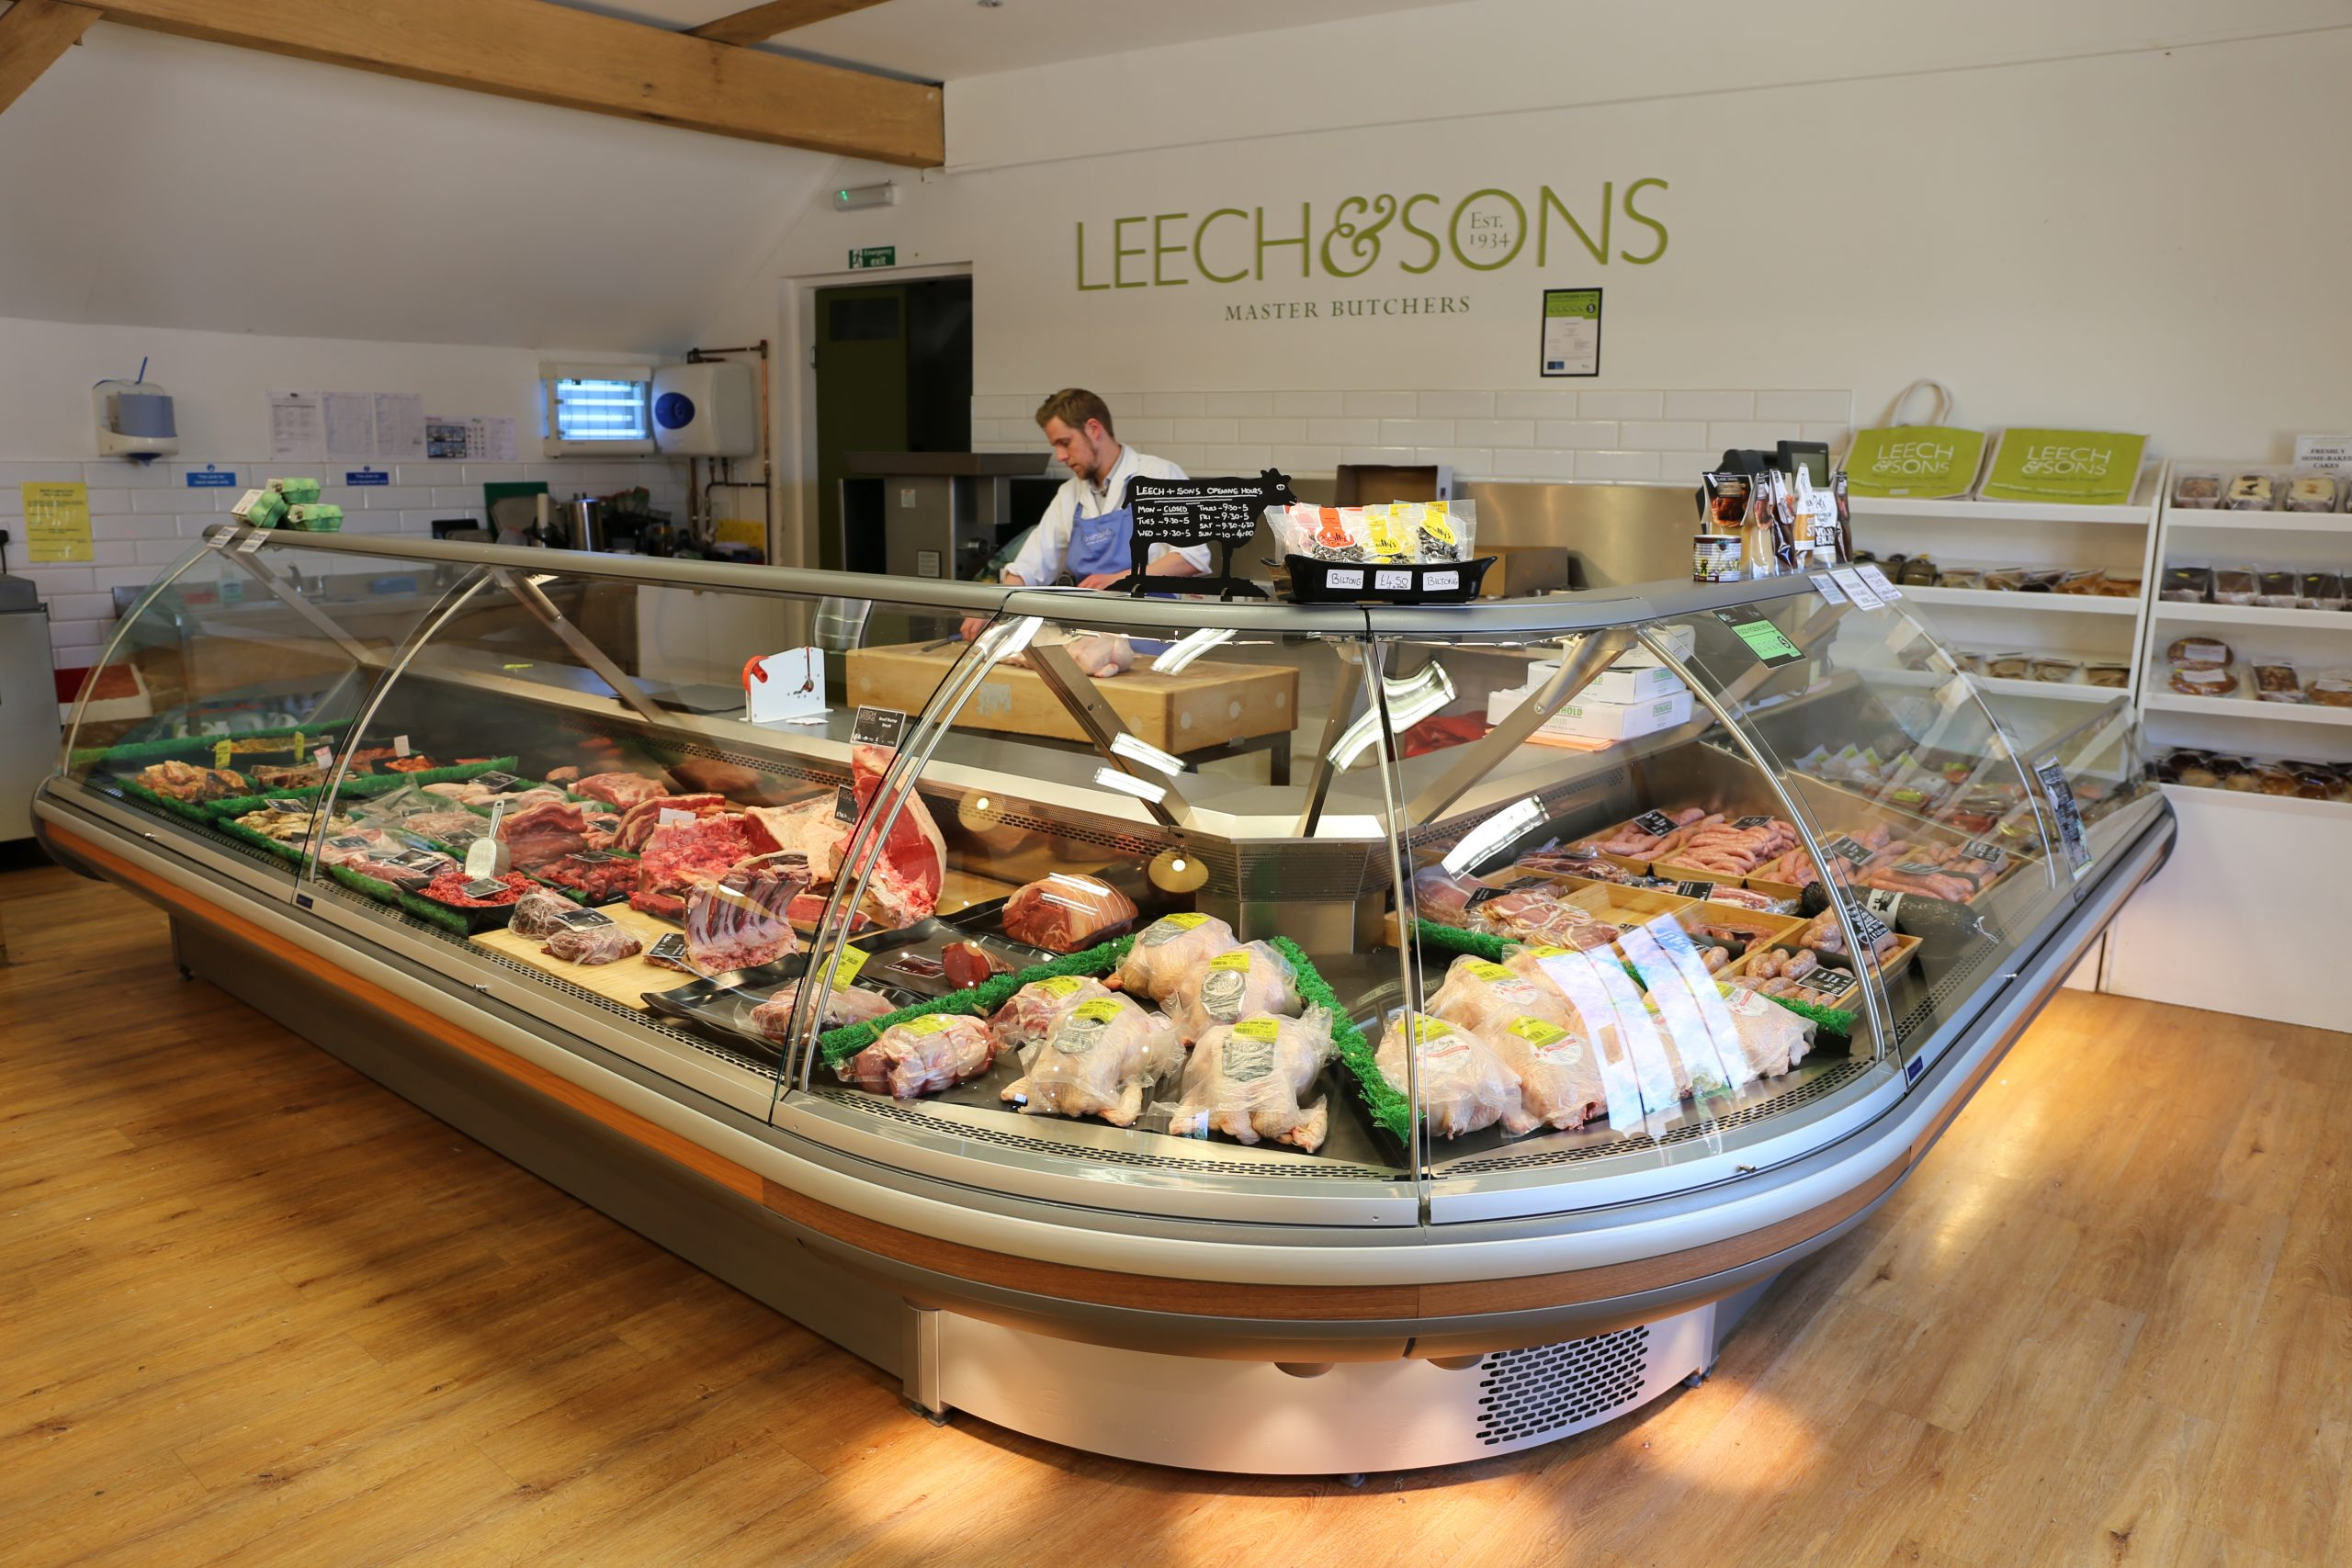 Leech and Sons Master butchers, providers of locally sourced meats - onsite at burwash larder